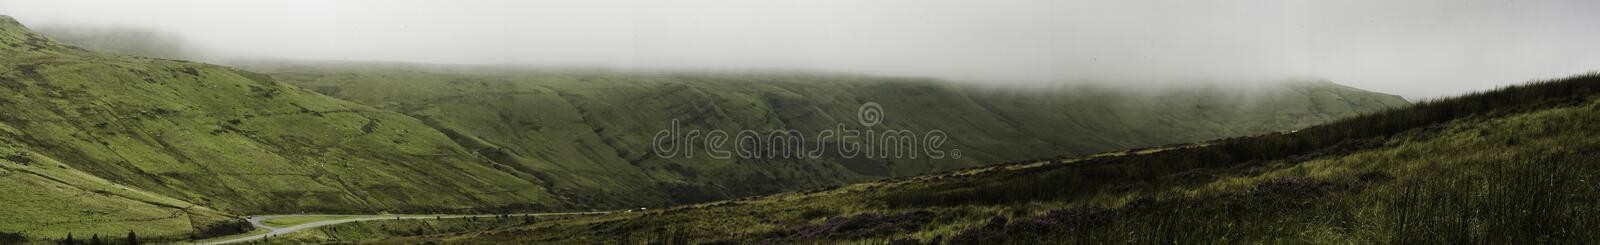 Landscape Brecon Beacon Mountains, Wales, UK royalty free stock image